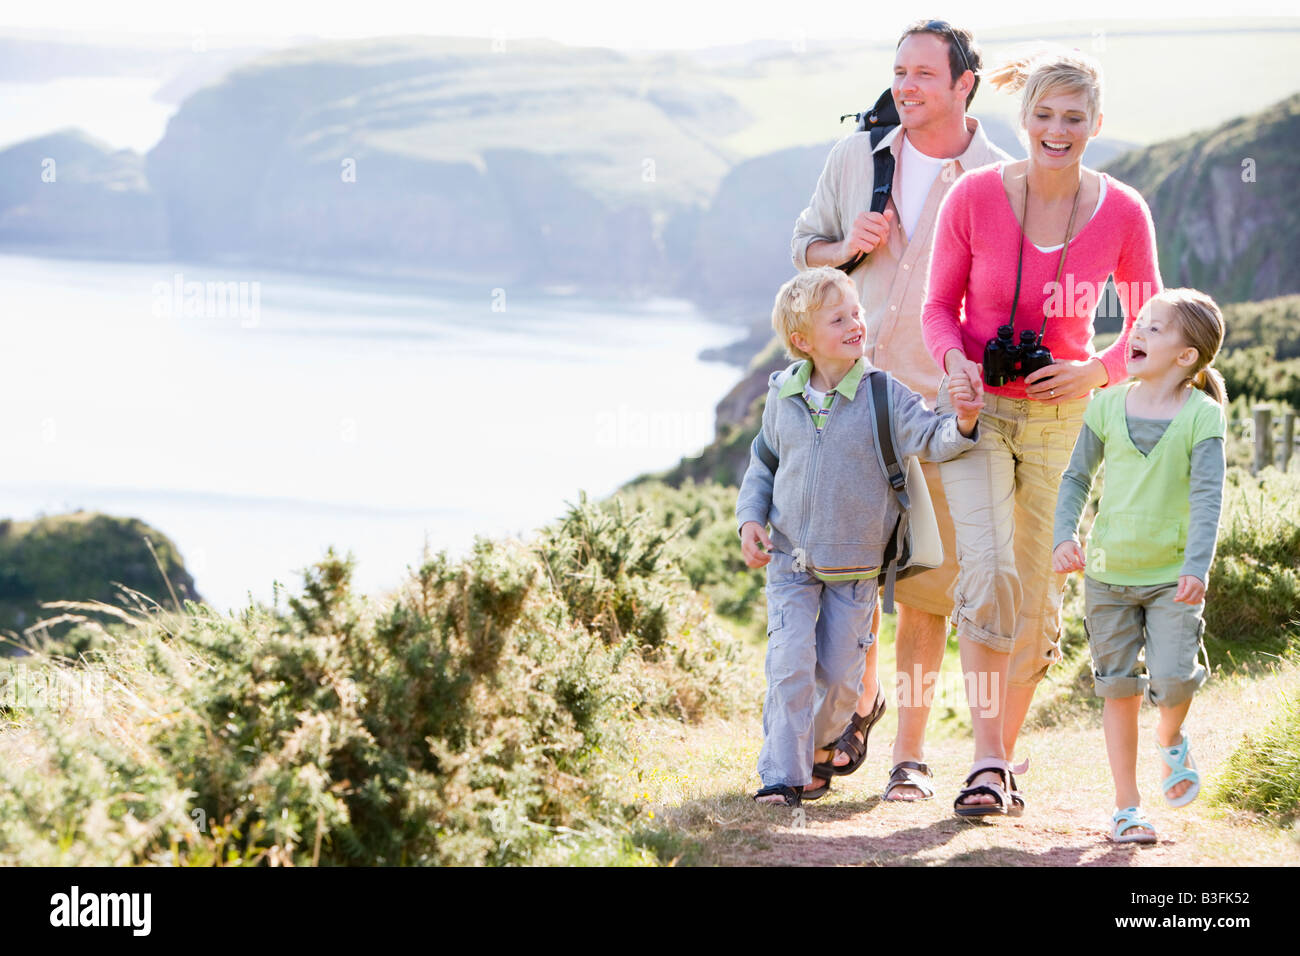 Family walking on path cliffside holding hands and smiling Photo Stock